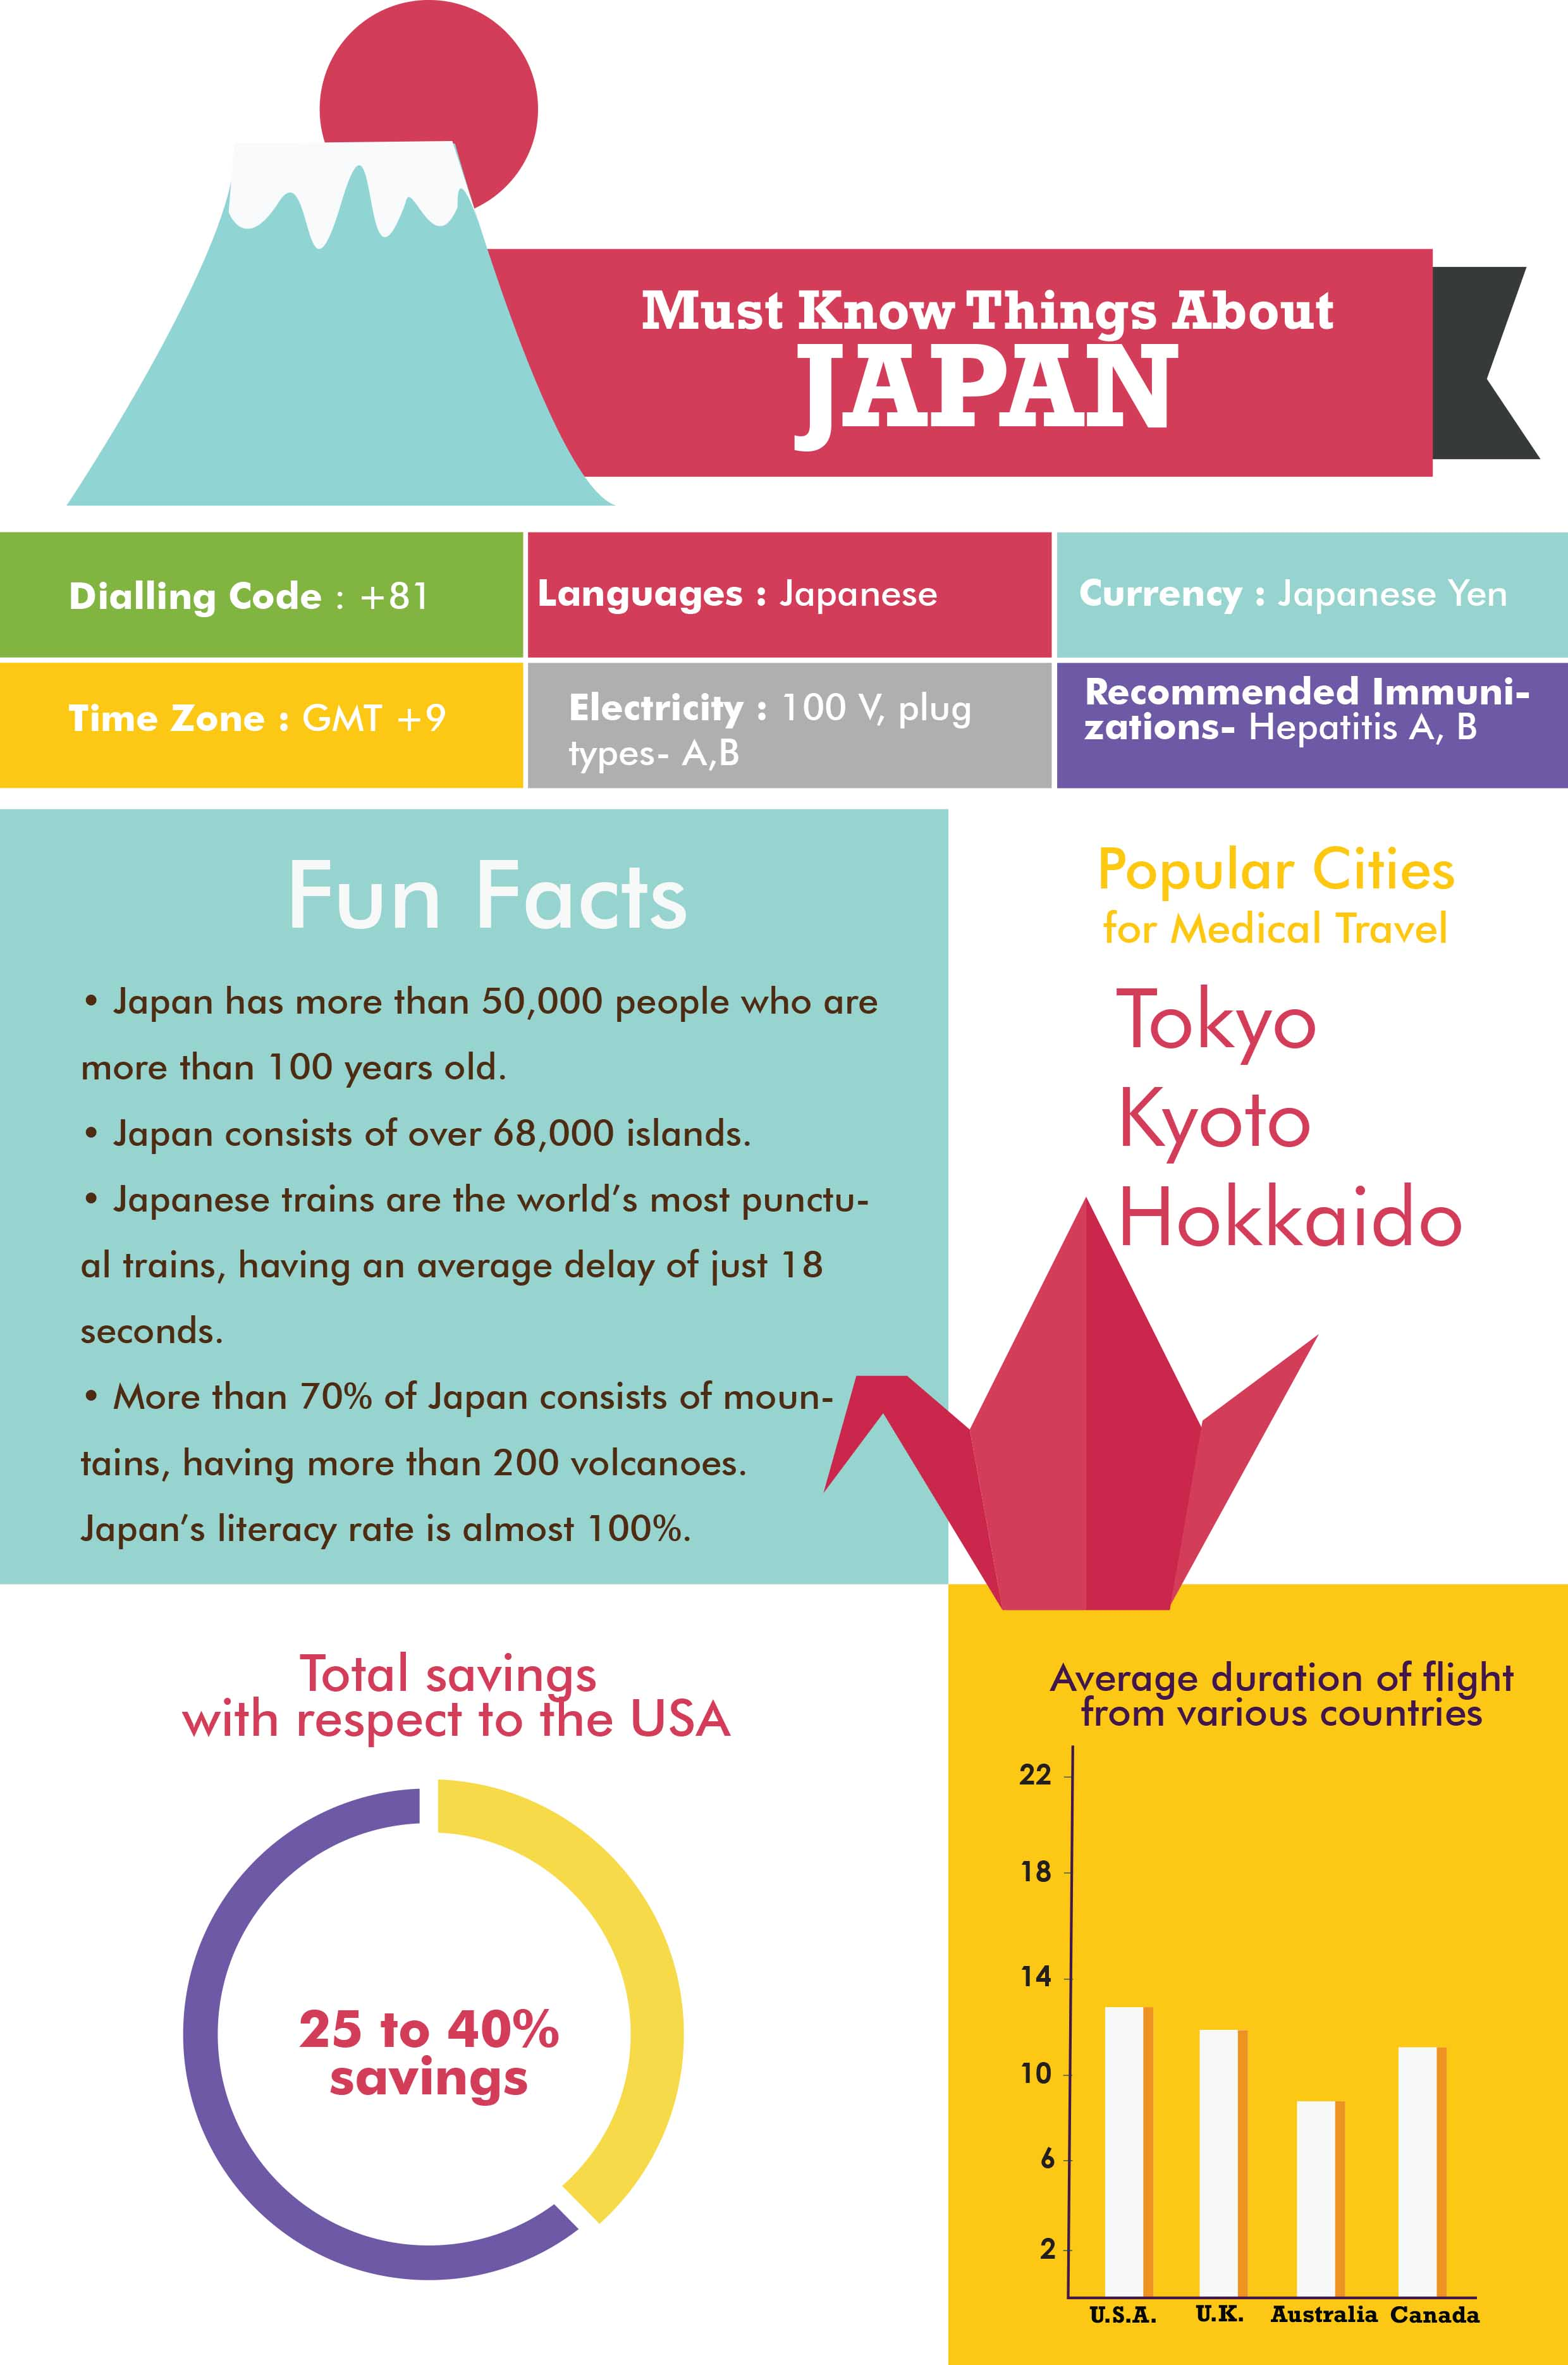 Facts About Medical Travel in Japan